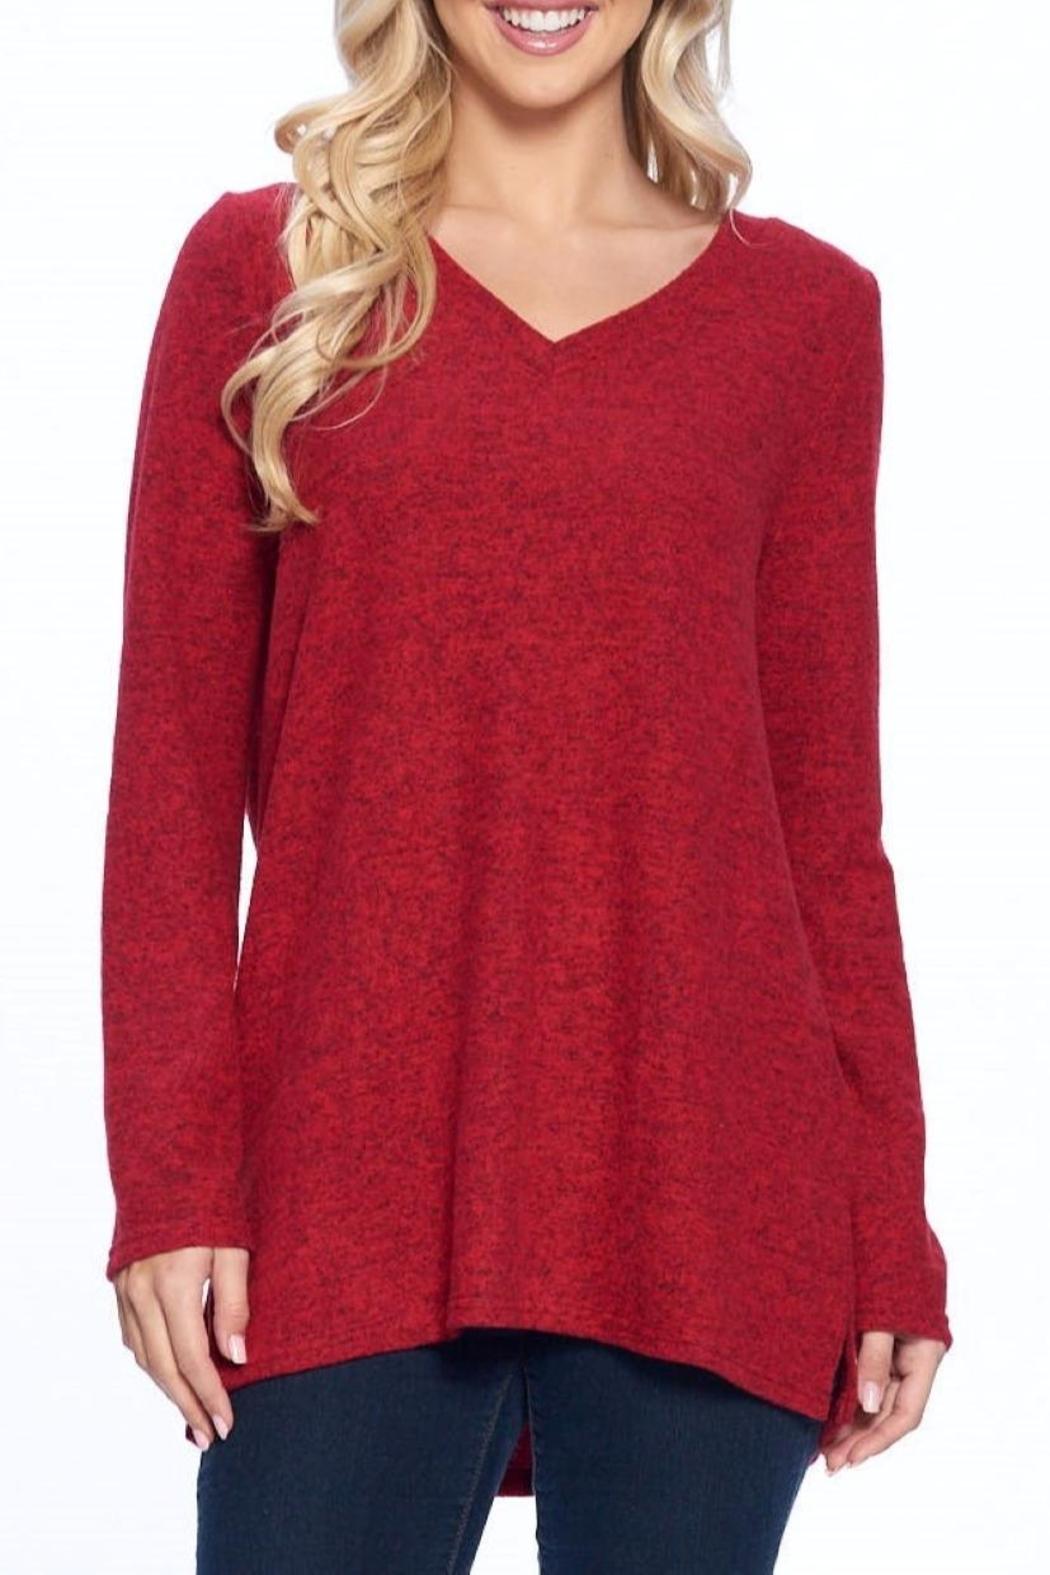 Aryeh Red V-Neck Knit Top - Main Image